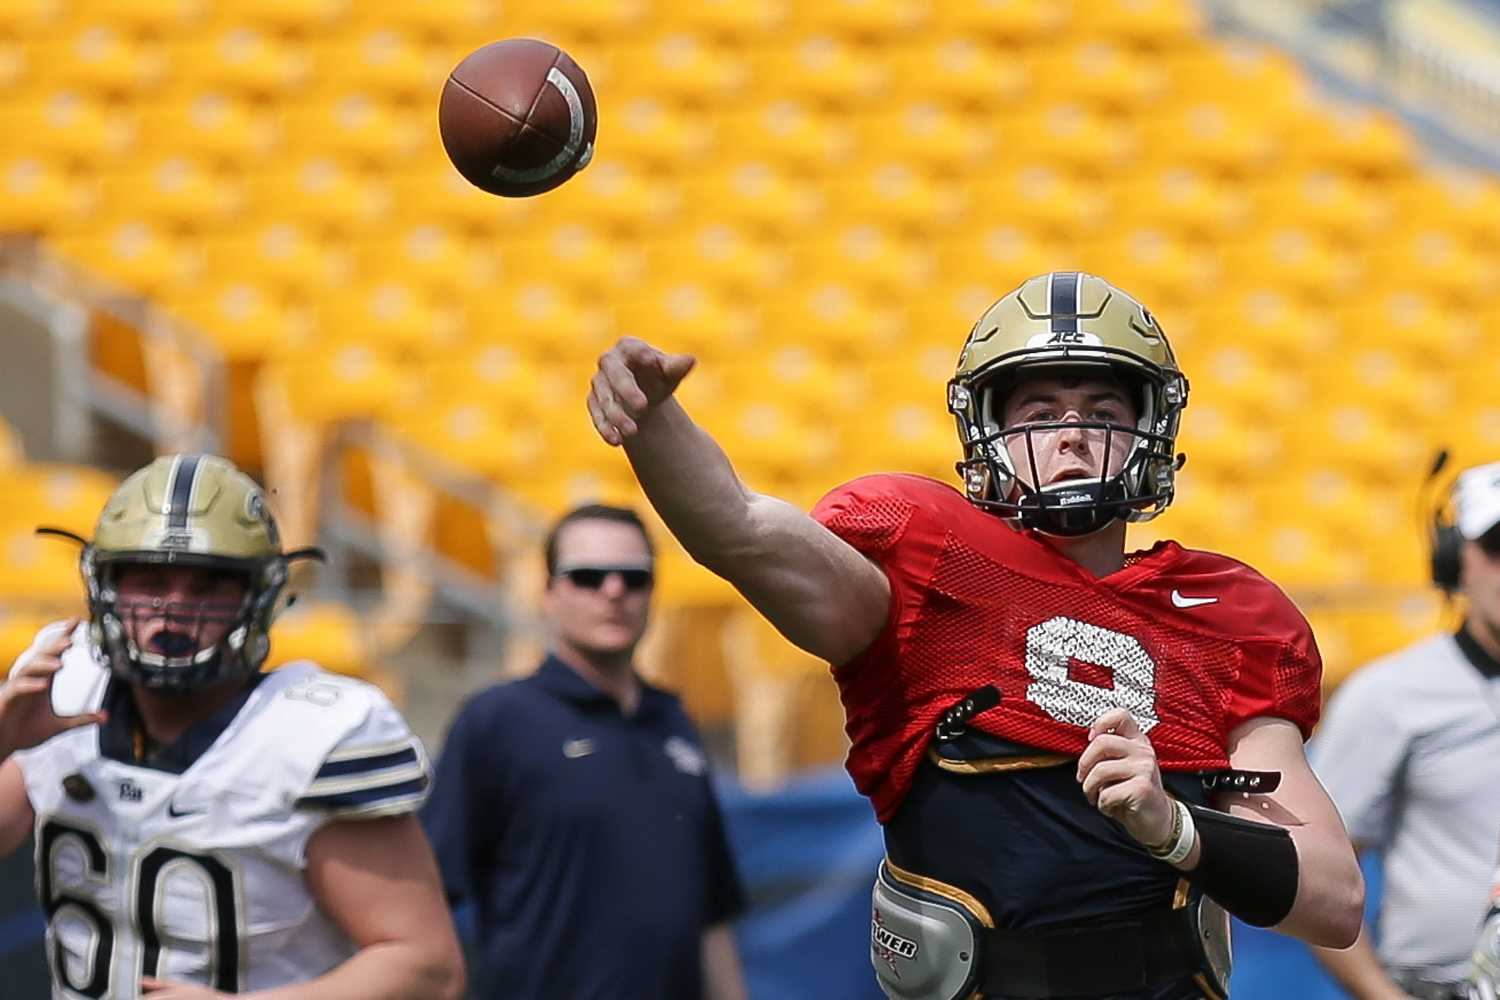 Sophomore quarterback Kenny Pickett completed 13 of 23 passes for 140 yards during Saturday's Blue and Gold game. (Photo by Thomas Yang | Visual Editor)